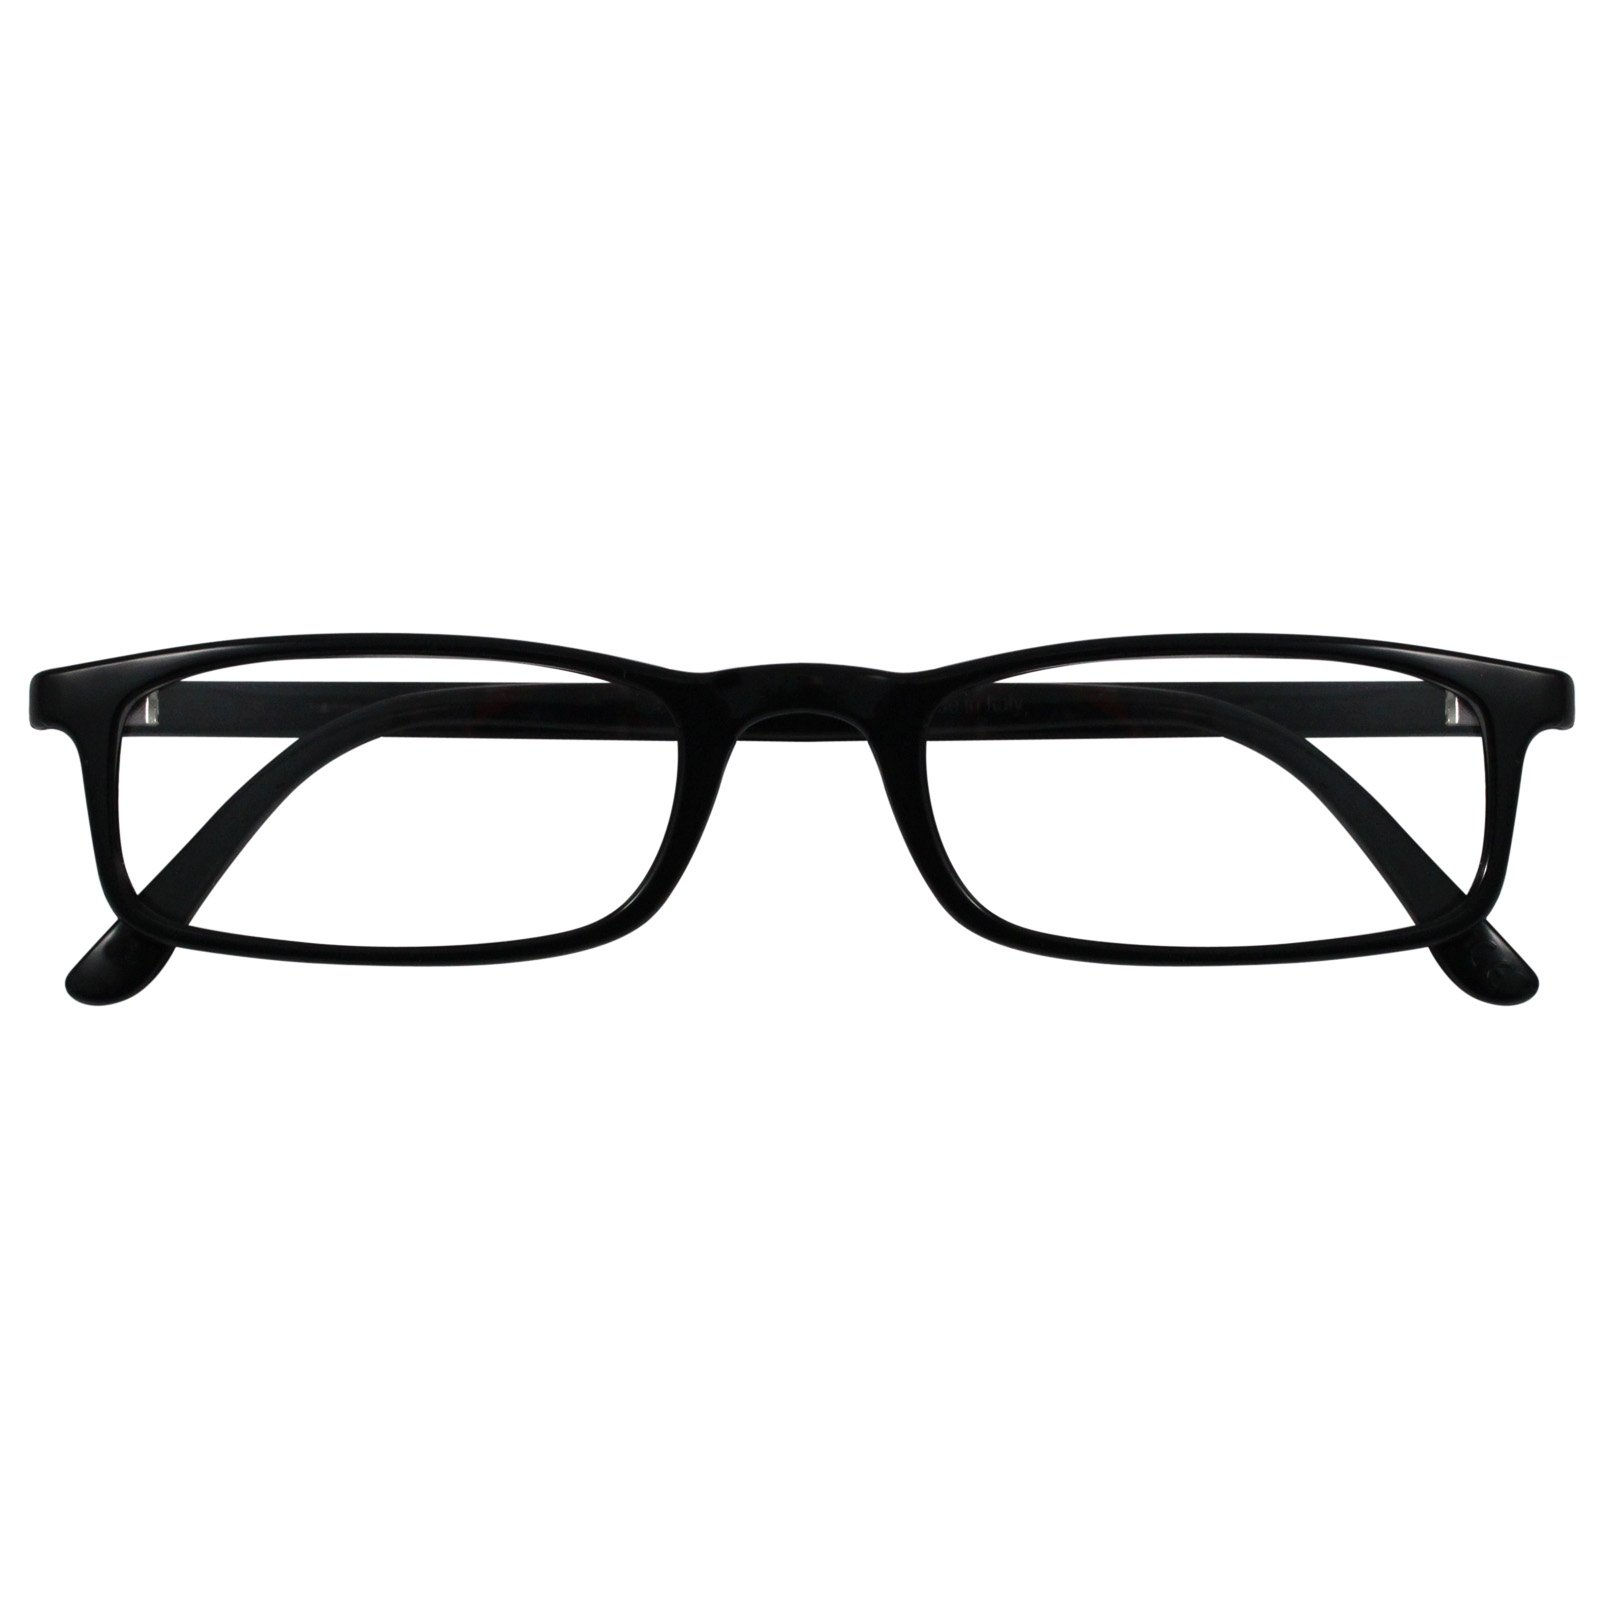 Reading Glasses Nannini Optics Vision Care Italian Fashion Readers - Black 3.0